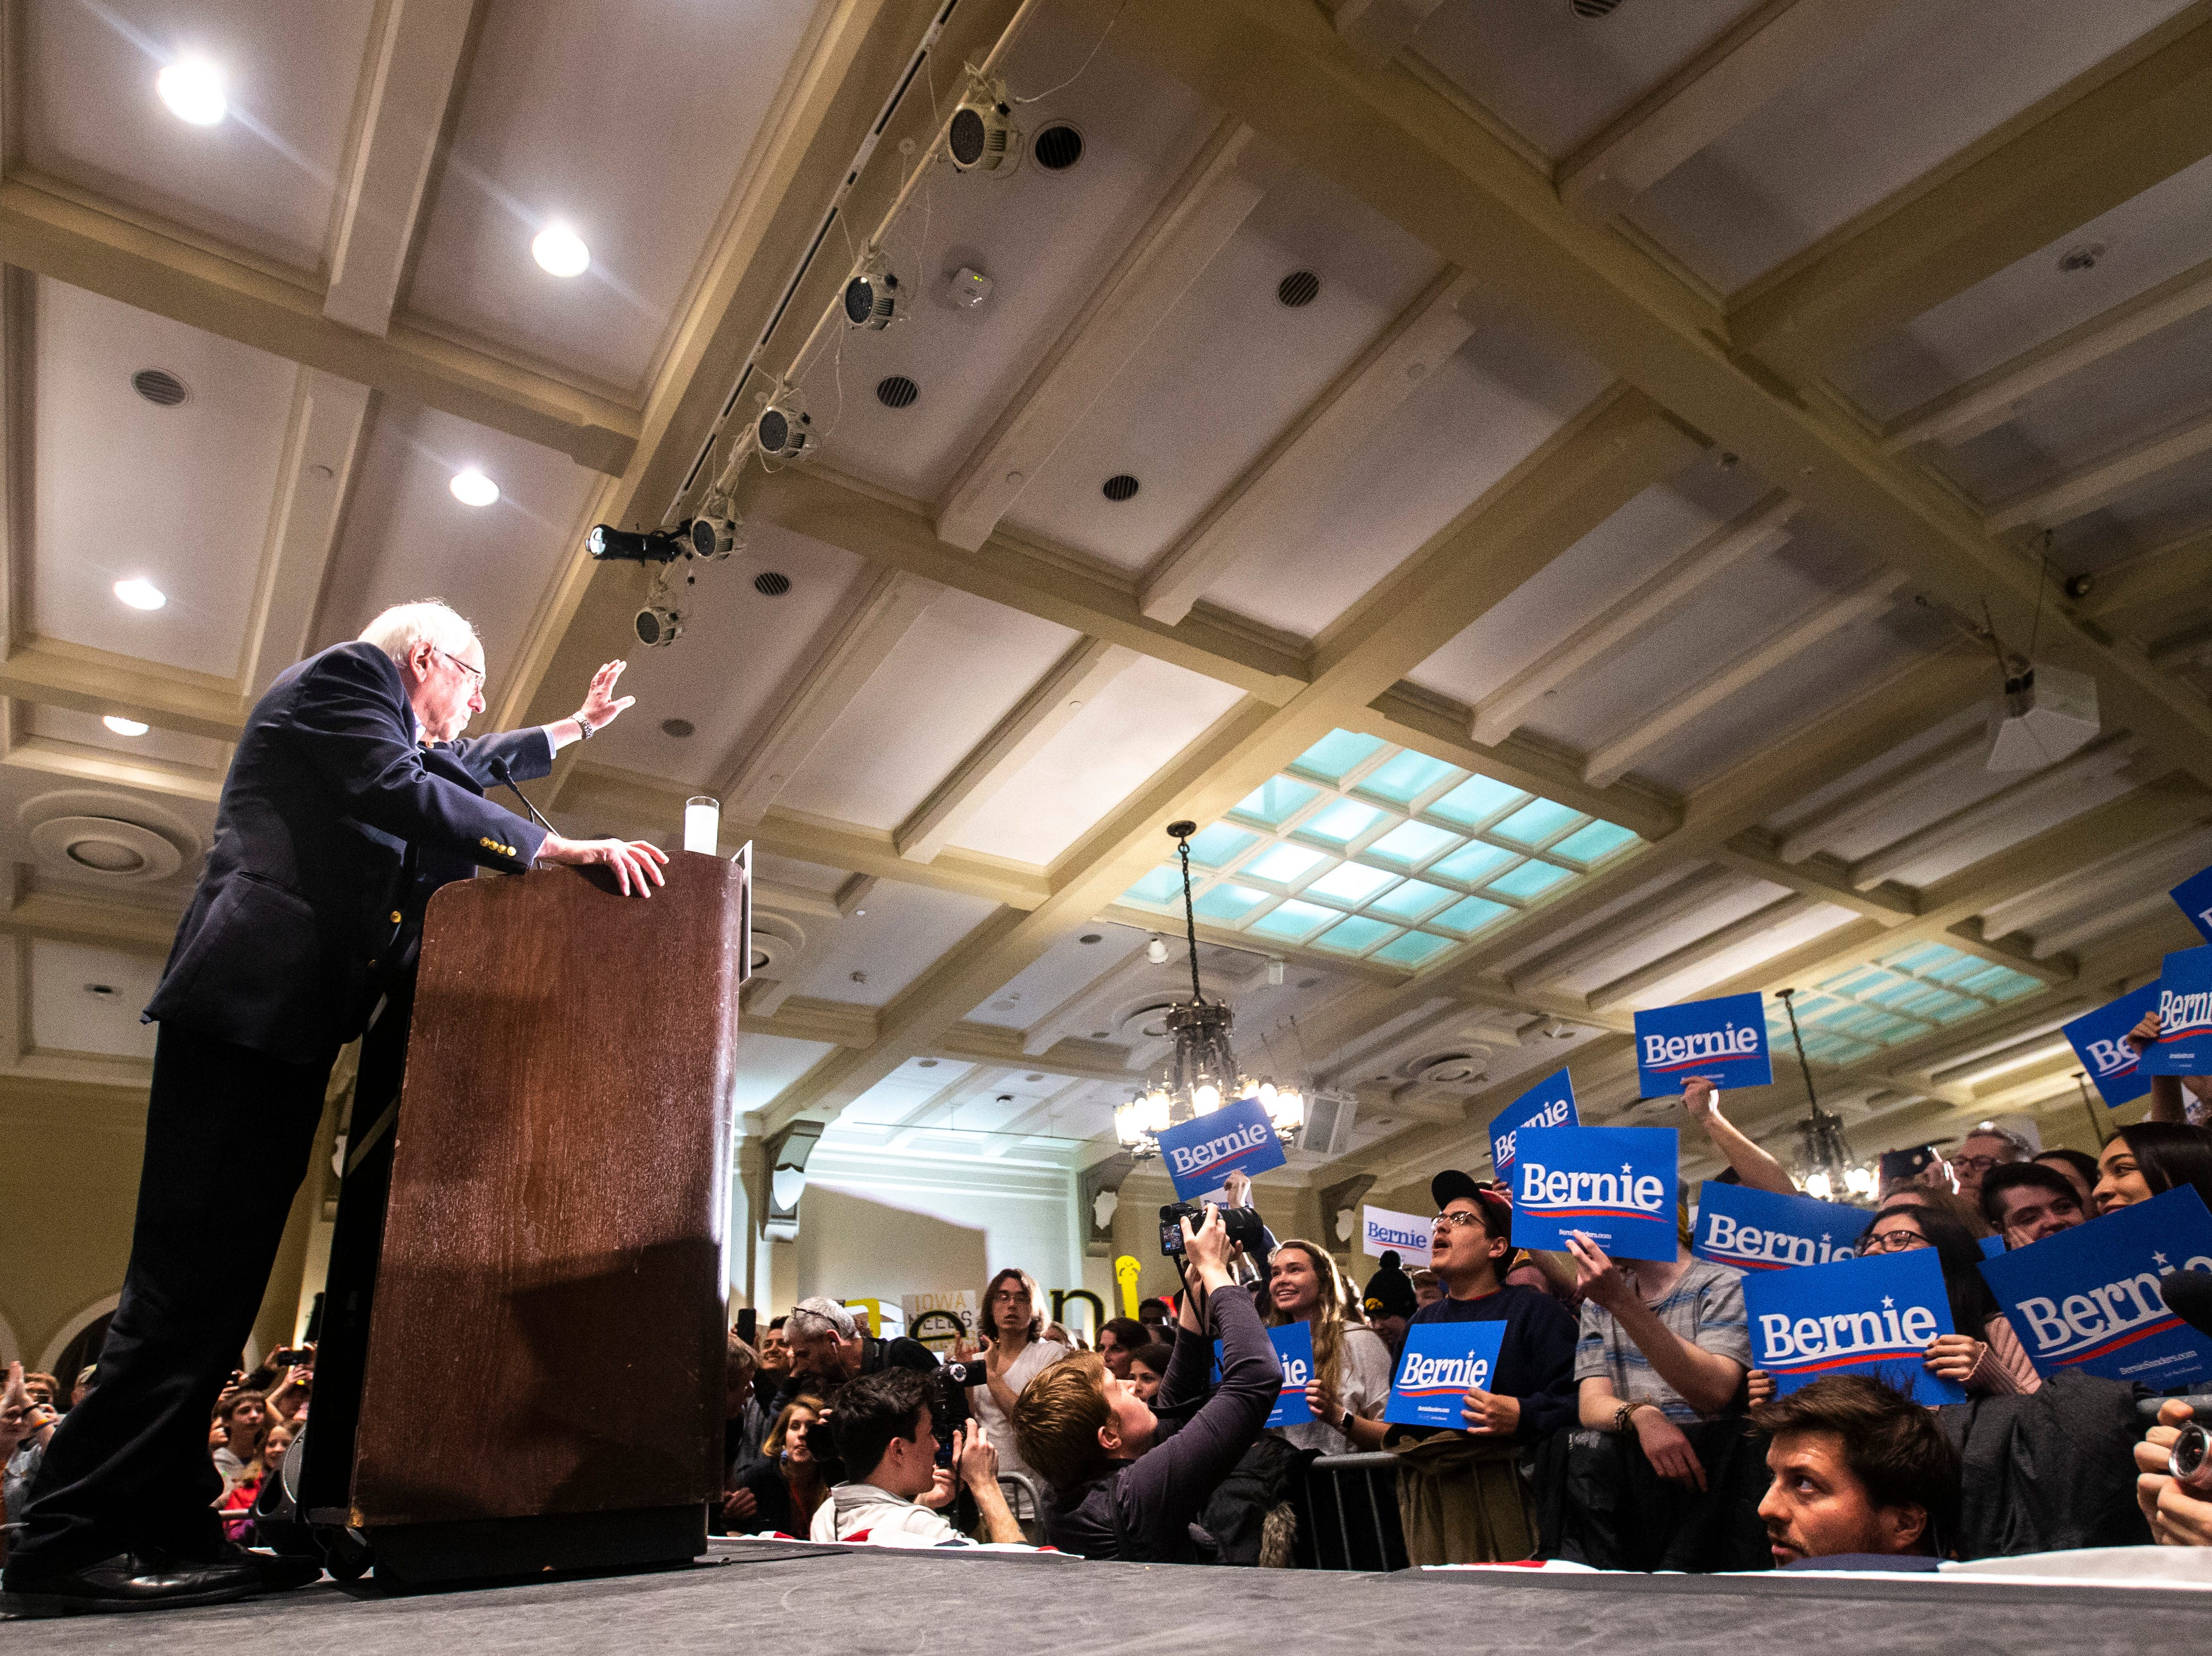 U.S. Sen. Bernie Sanders, I-VT, waves to supporters while speaking at an event during his first trip to the state ahead of the caucus, Friday, March 8, 2019, at the Iowa Memorial Union on the University of Iowa campus in Iowa City, Iowa.